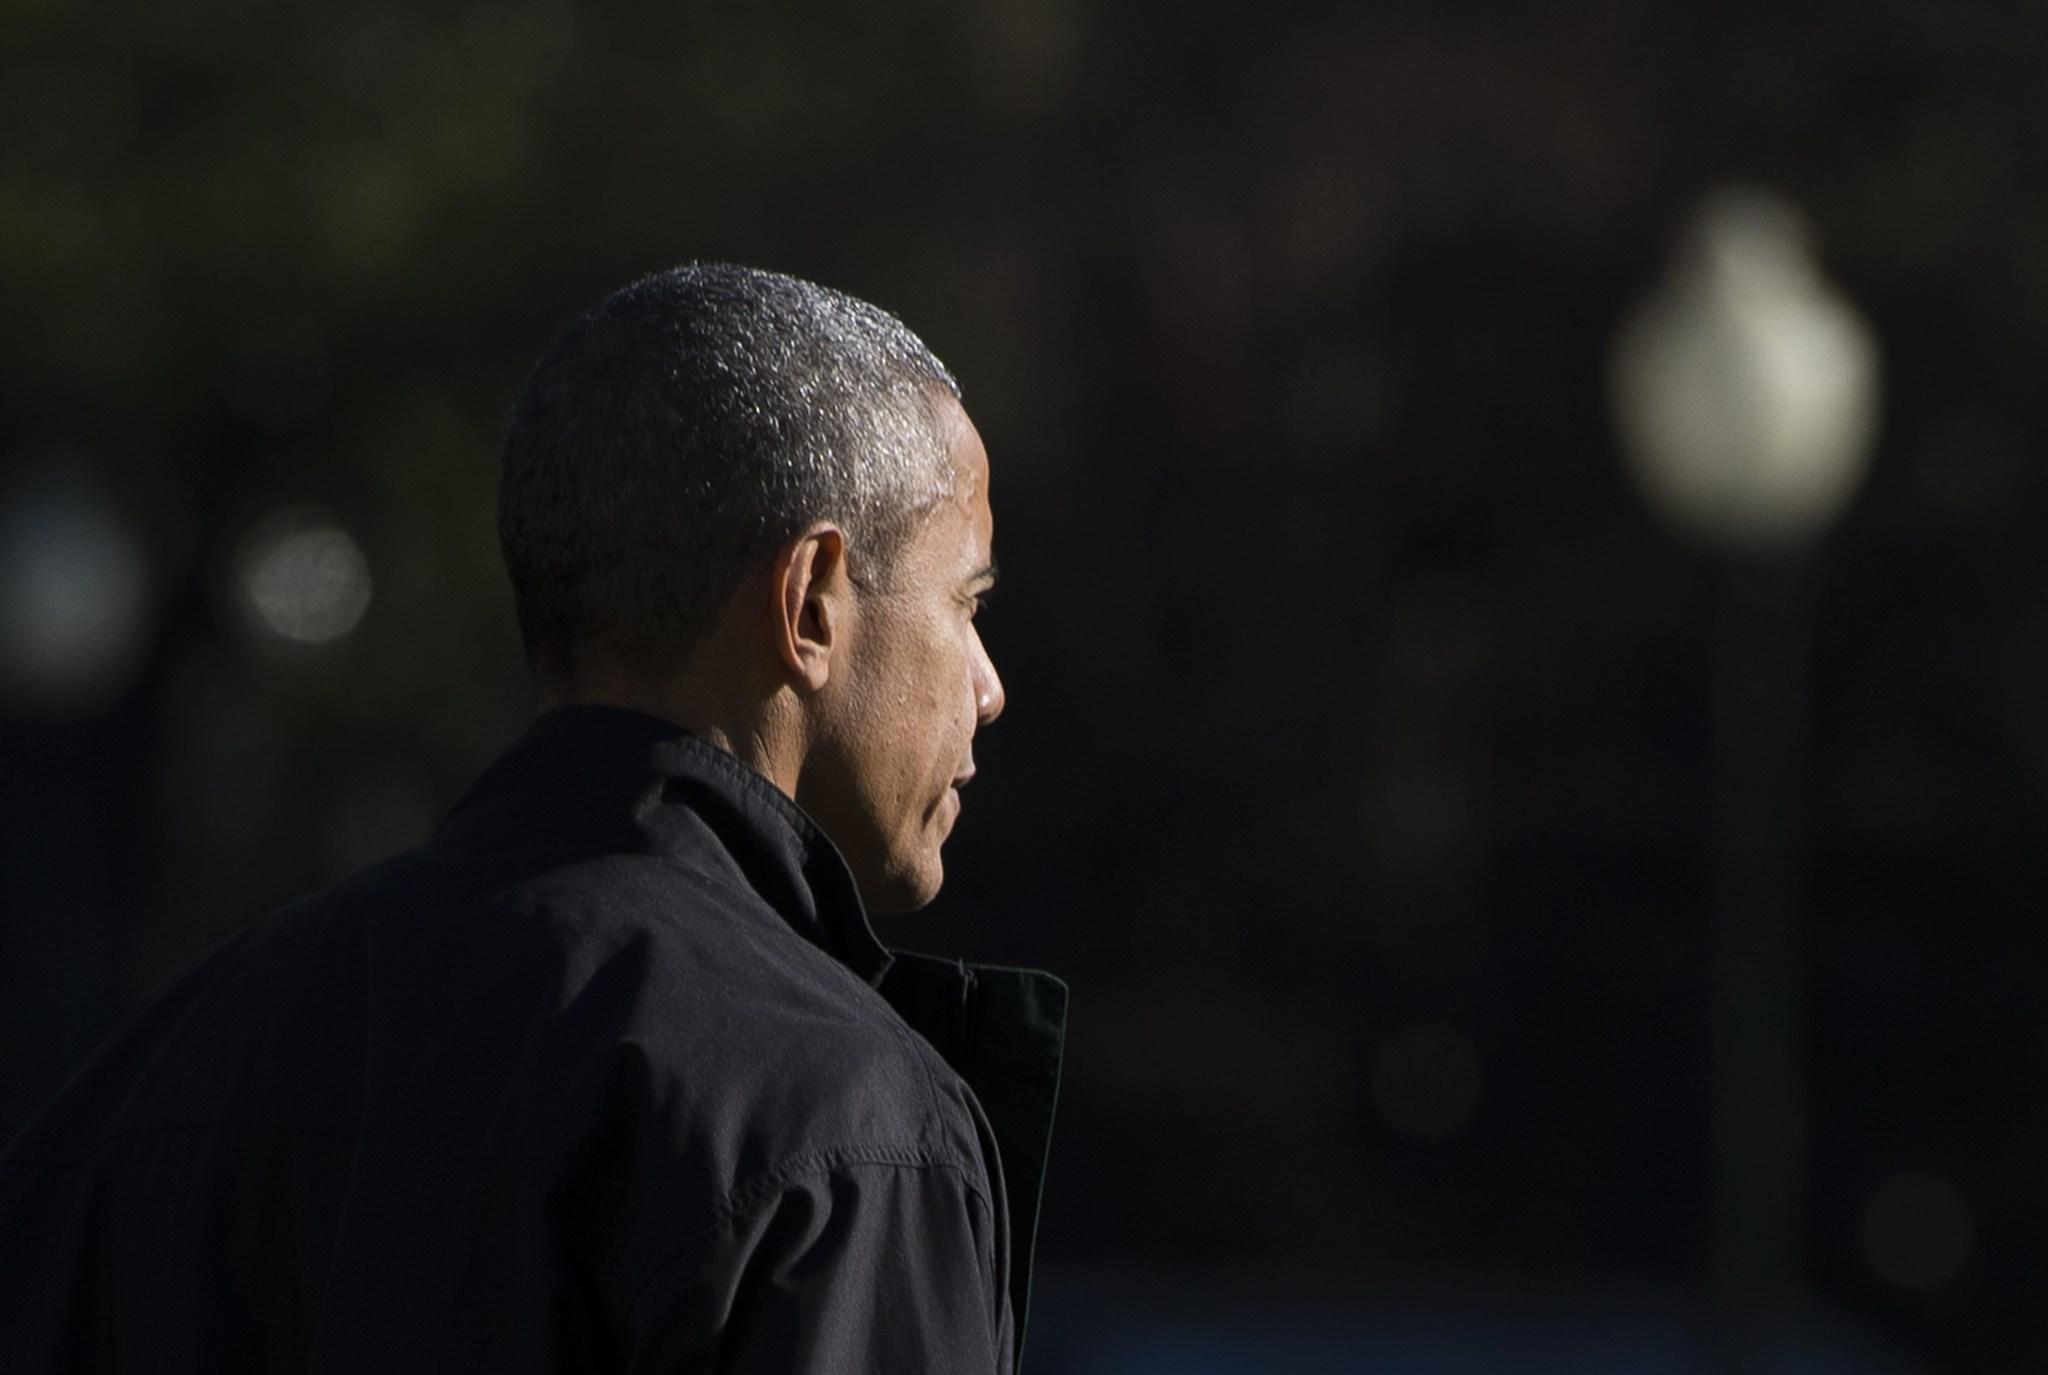 President Obama departs the White House en route to Andrews Air Force Base for his trip to Turkey to attend the G20 Summit. (Molly Riley / AFP / Getty Images)